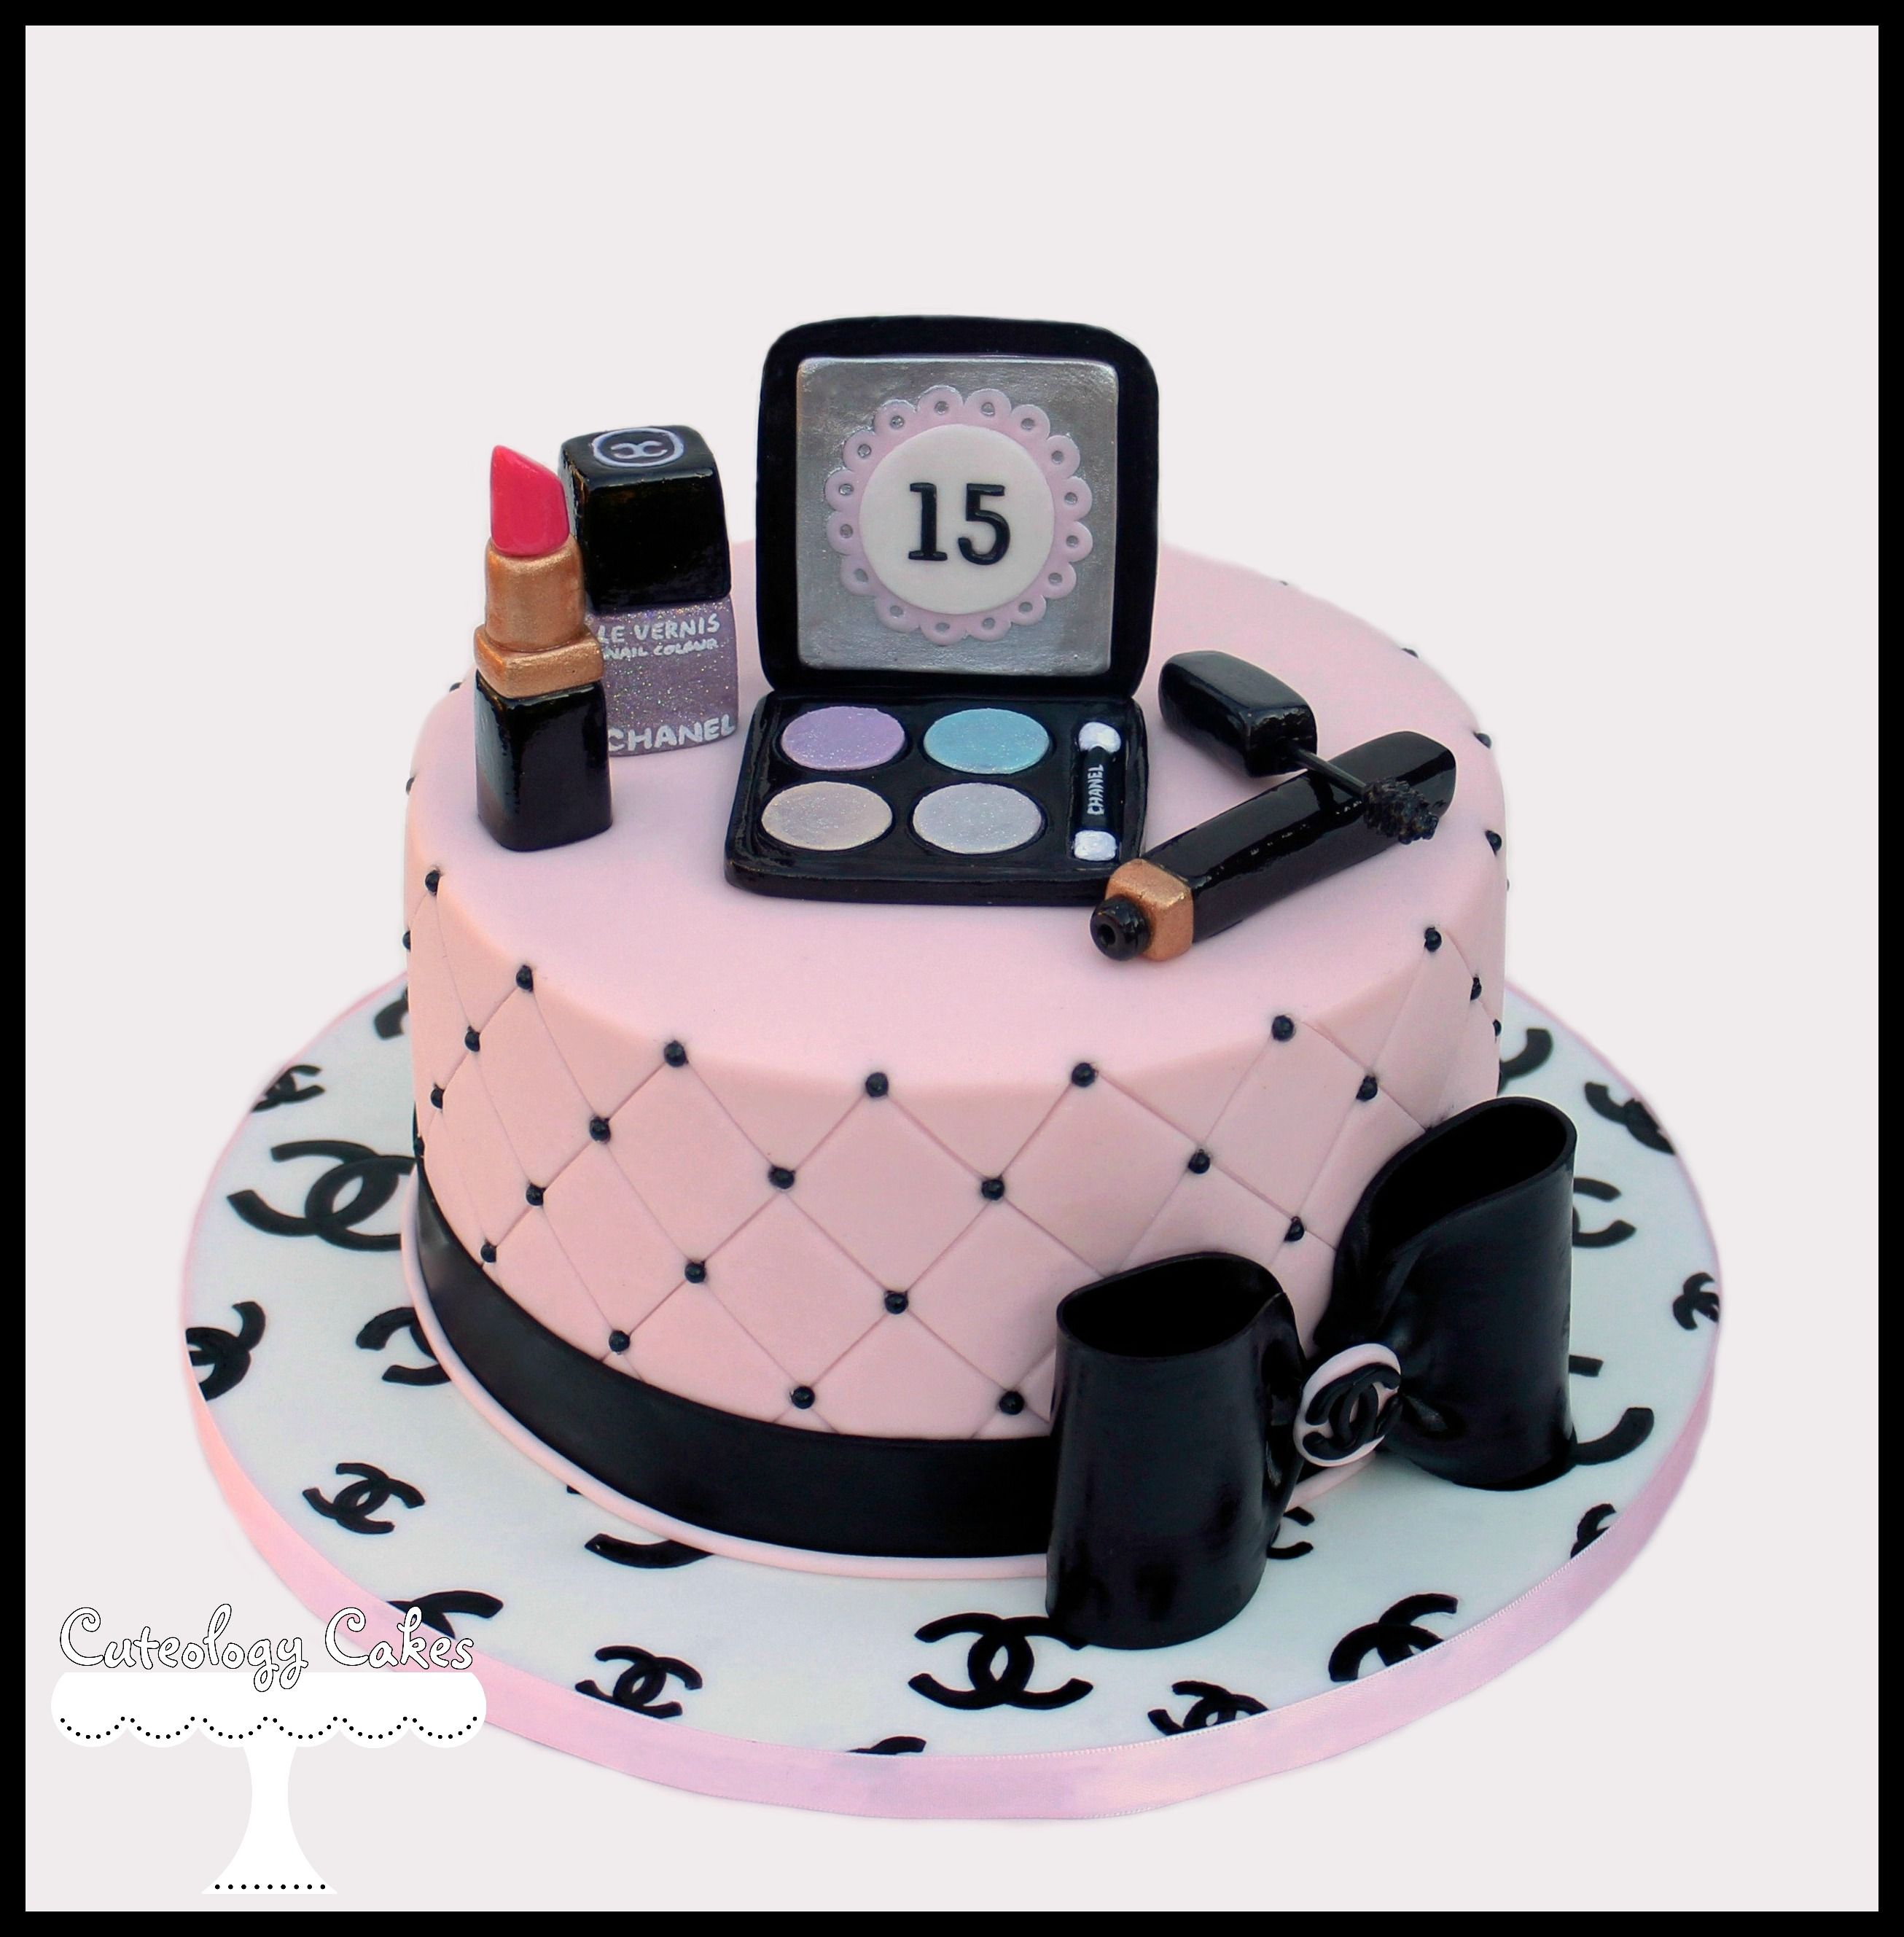 Chanel Makeup Cake Www Facebook Com I Love Cuteology Cakes Con